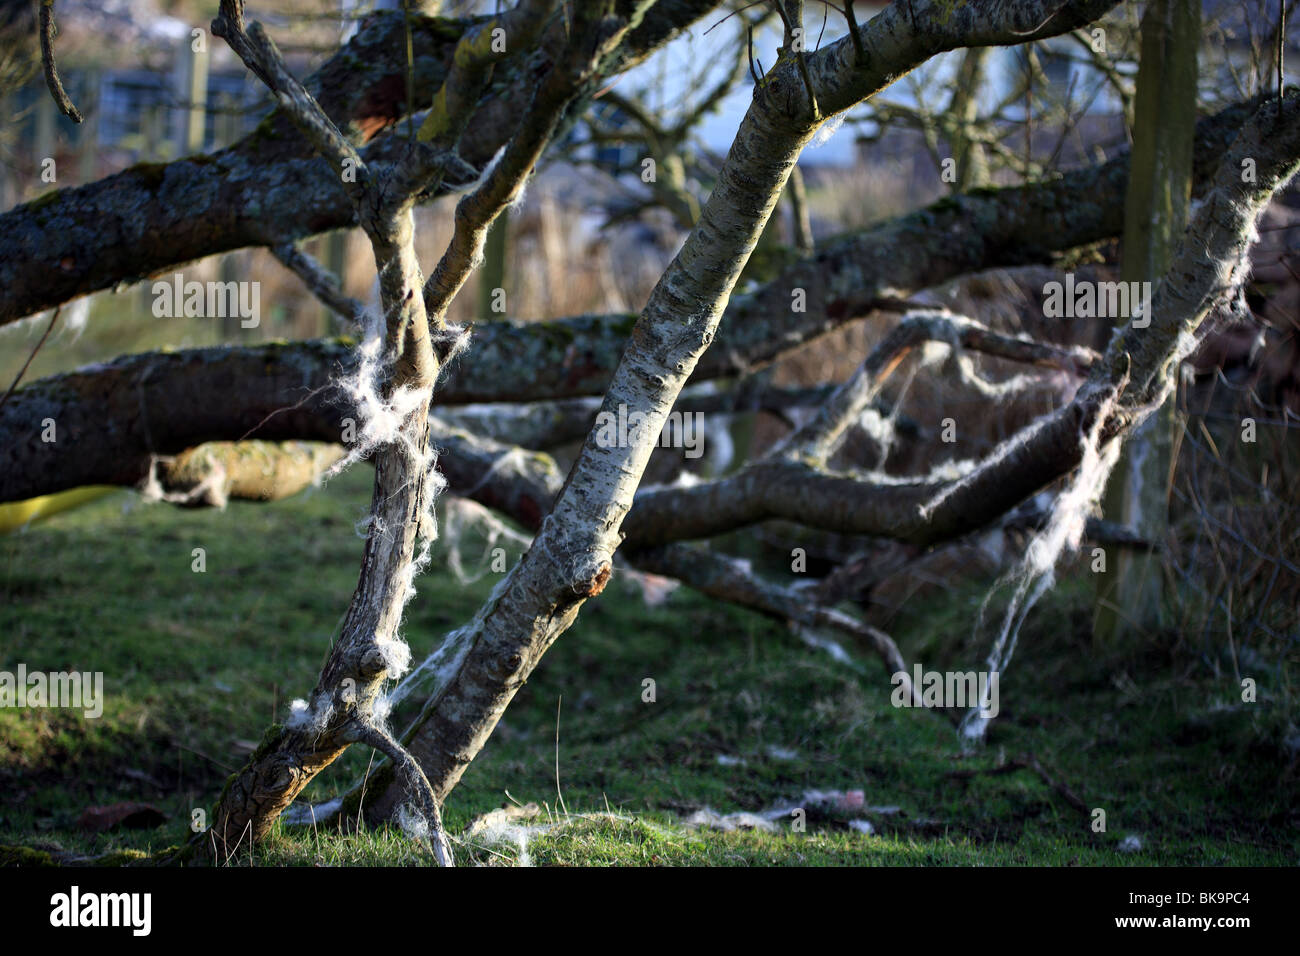 Sheep wool caught in tree branches and blowing in the wind - Stock Image